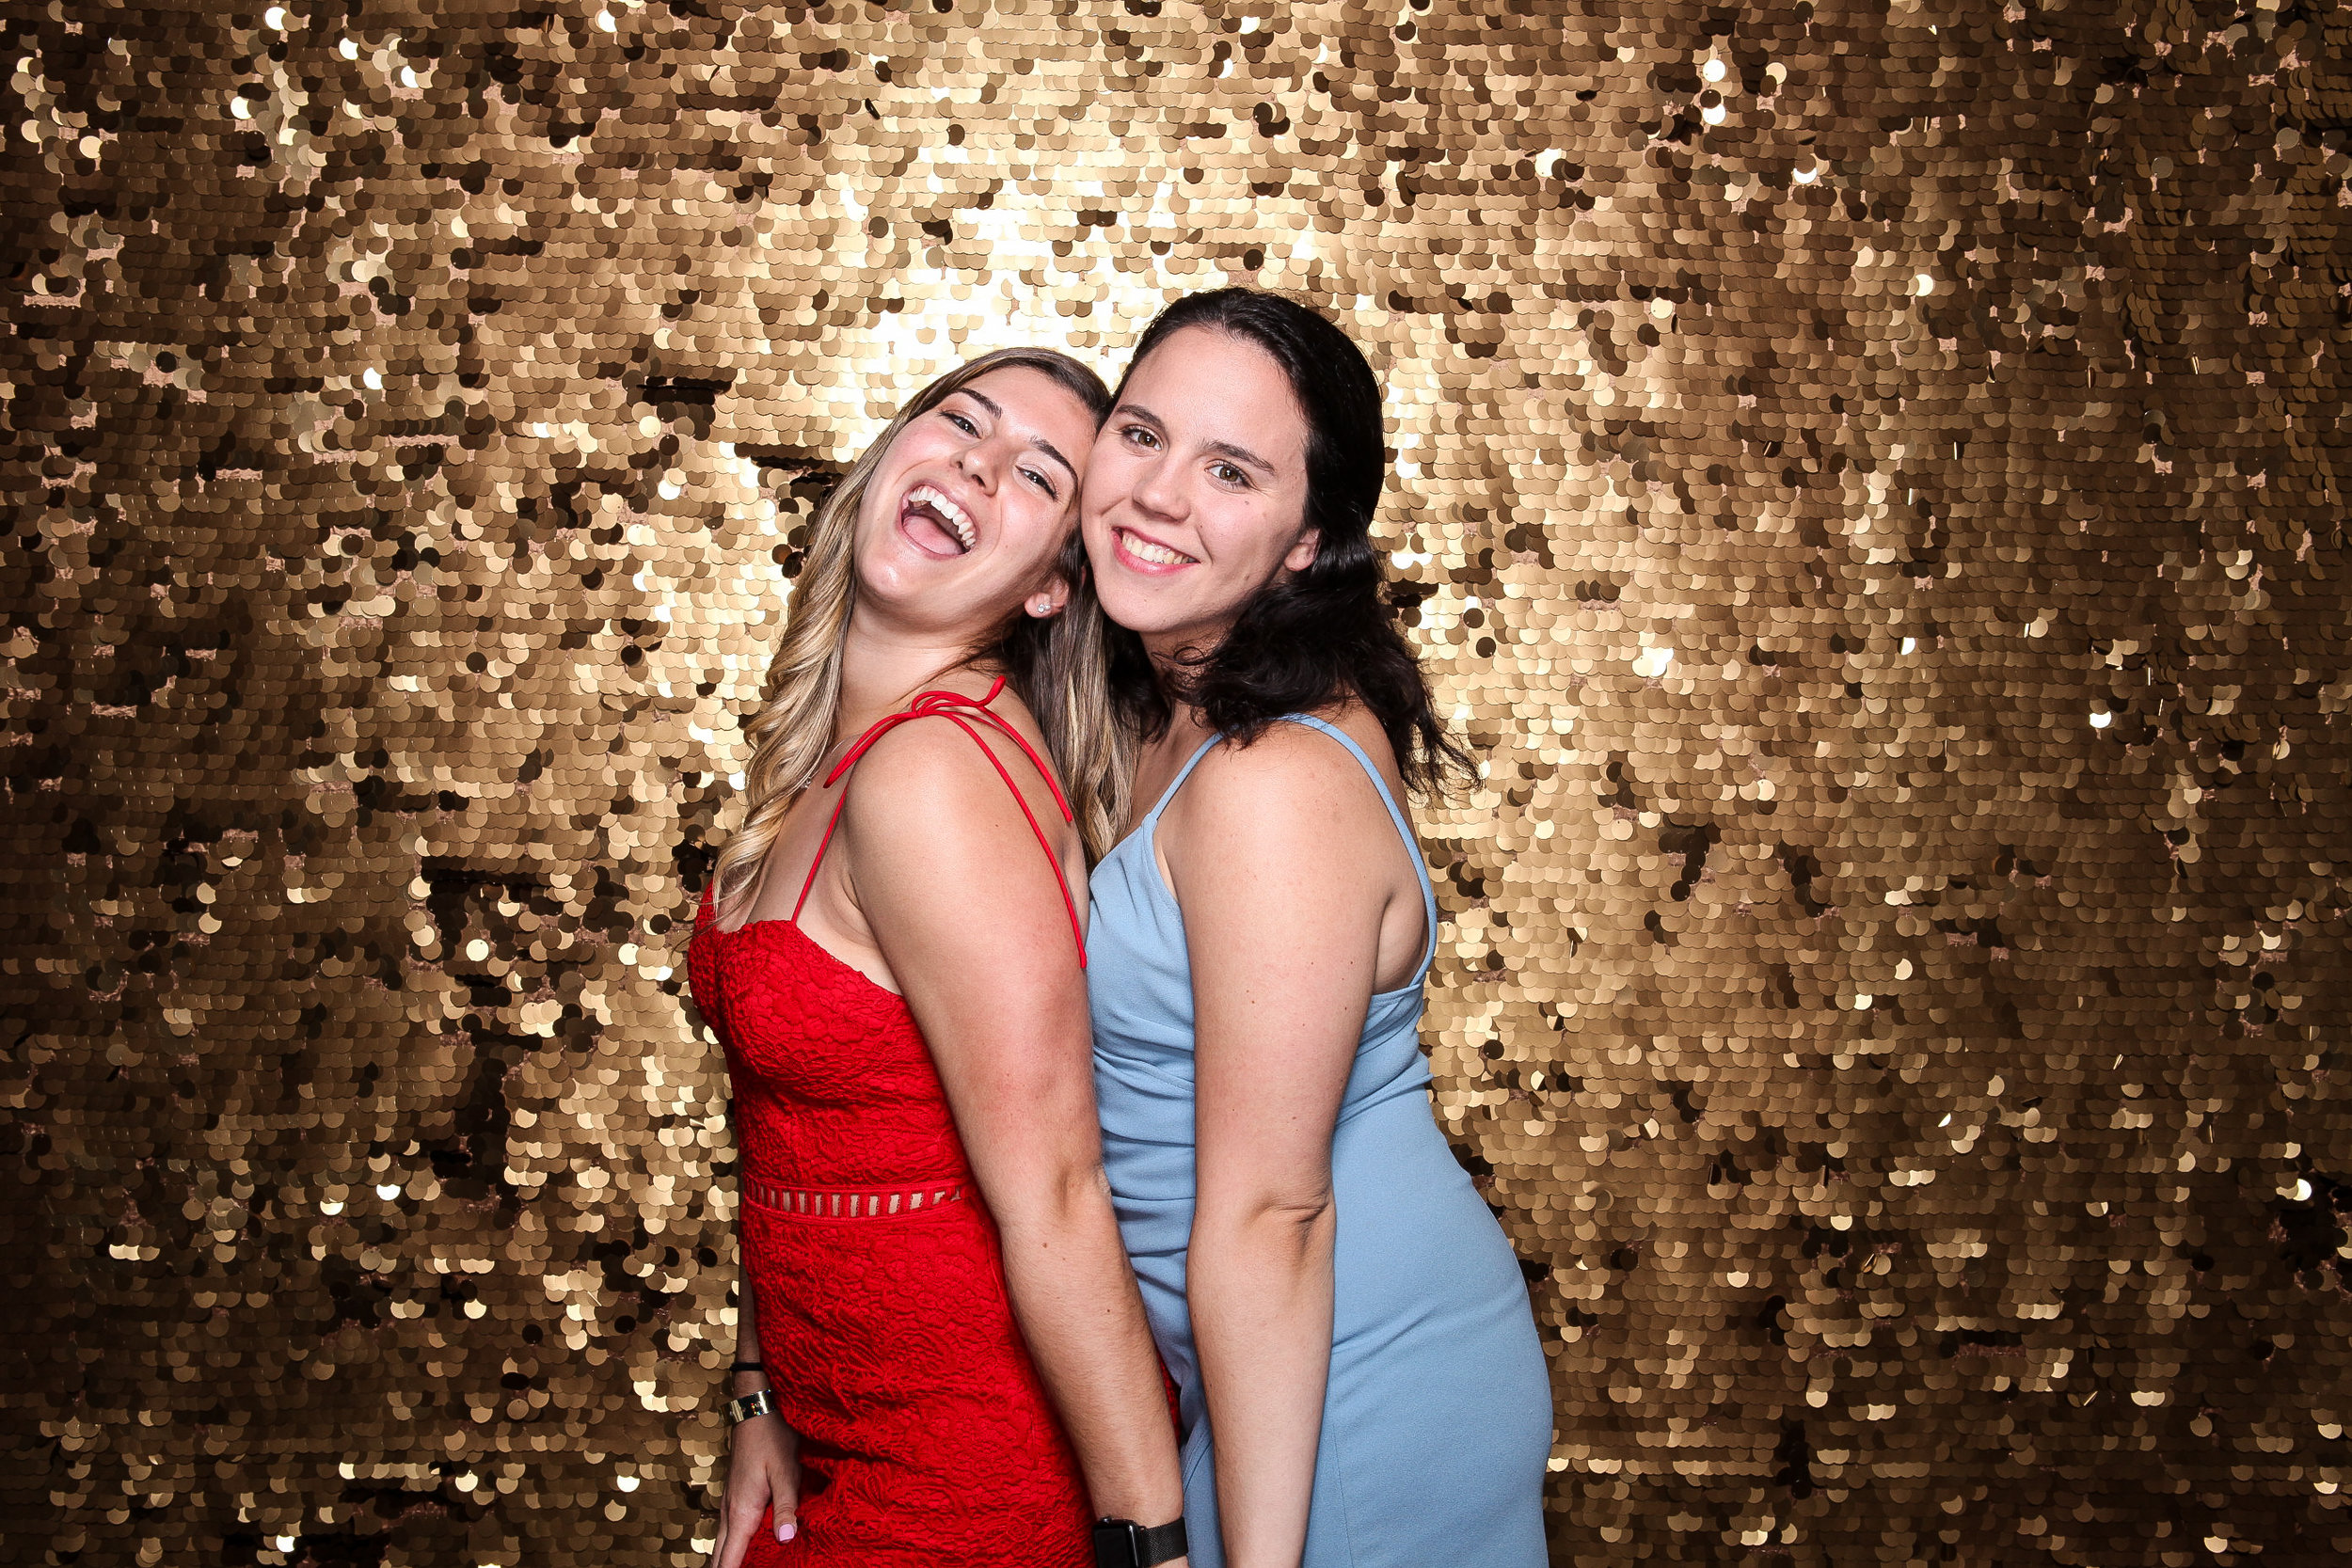 20190503_Adelphi_Senior_Formal-131.jpg